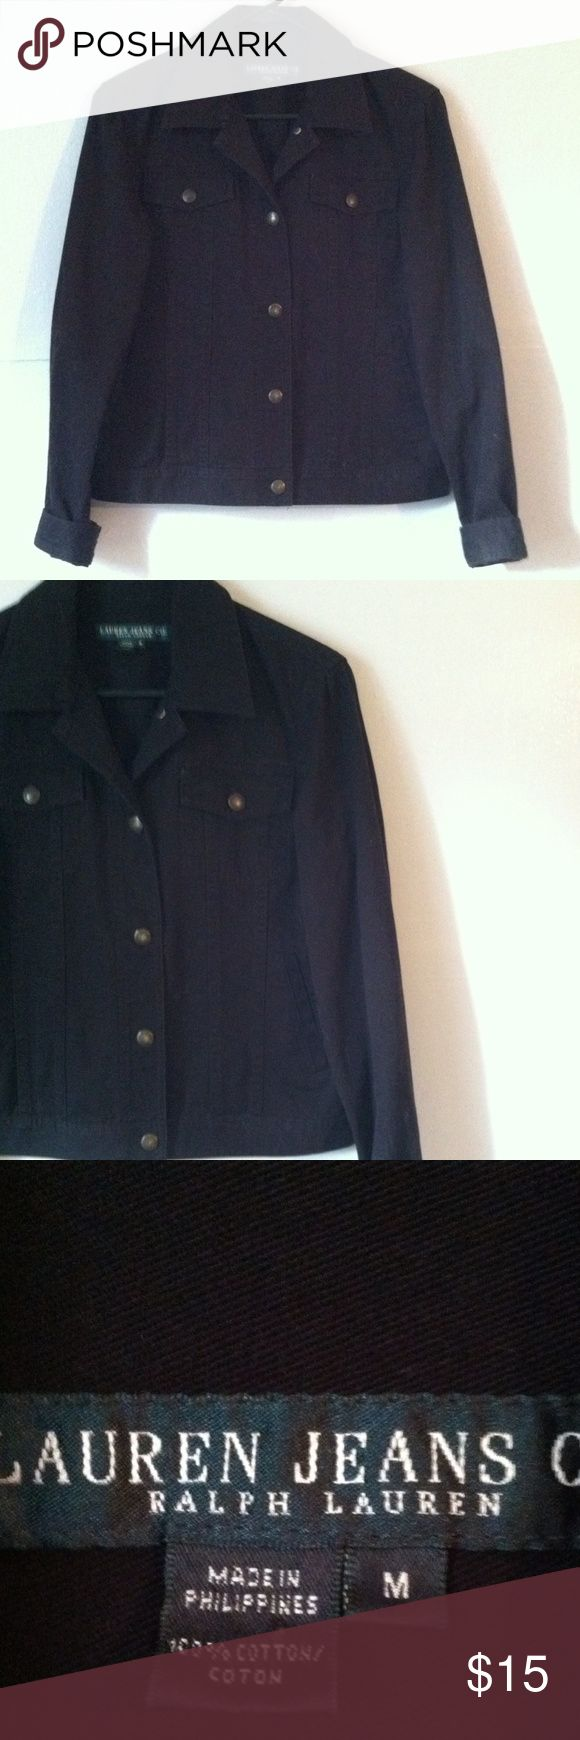 Ralph Lauren black Jean jacket Medium •Excellent used condition •Button closure •Pockets on each side •Full length sleeves with button cuffs •Denim/ Jean material •Color: Black •Brand: Ralph Lauren •Size: Medium •NO TRADES Ralph Lauren Jackets & Coats Jean Jackets